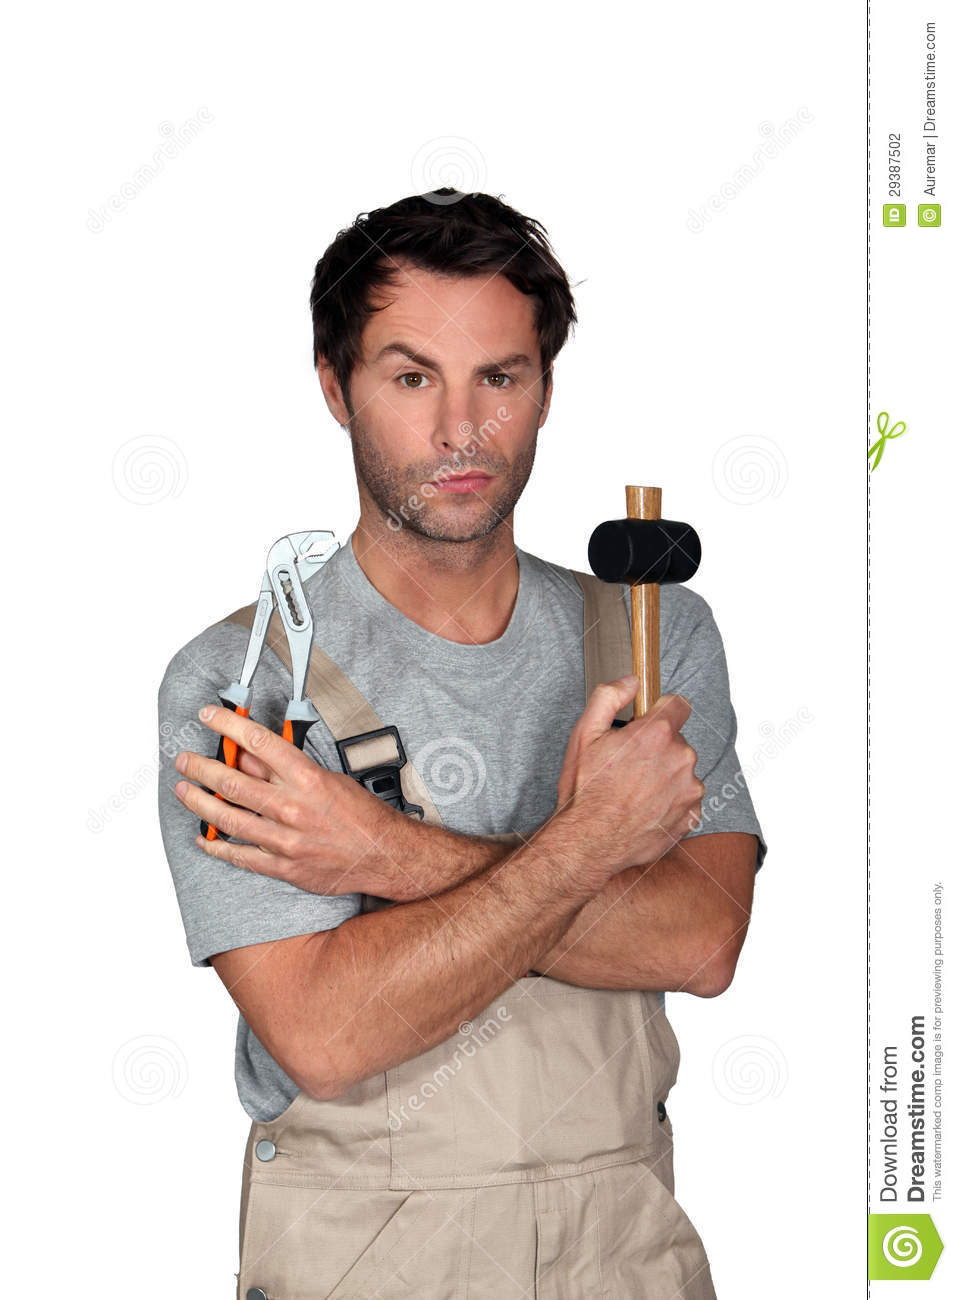 Man Confused Work Tools Stock Photos - Download 90 Royalty ...